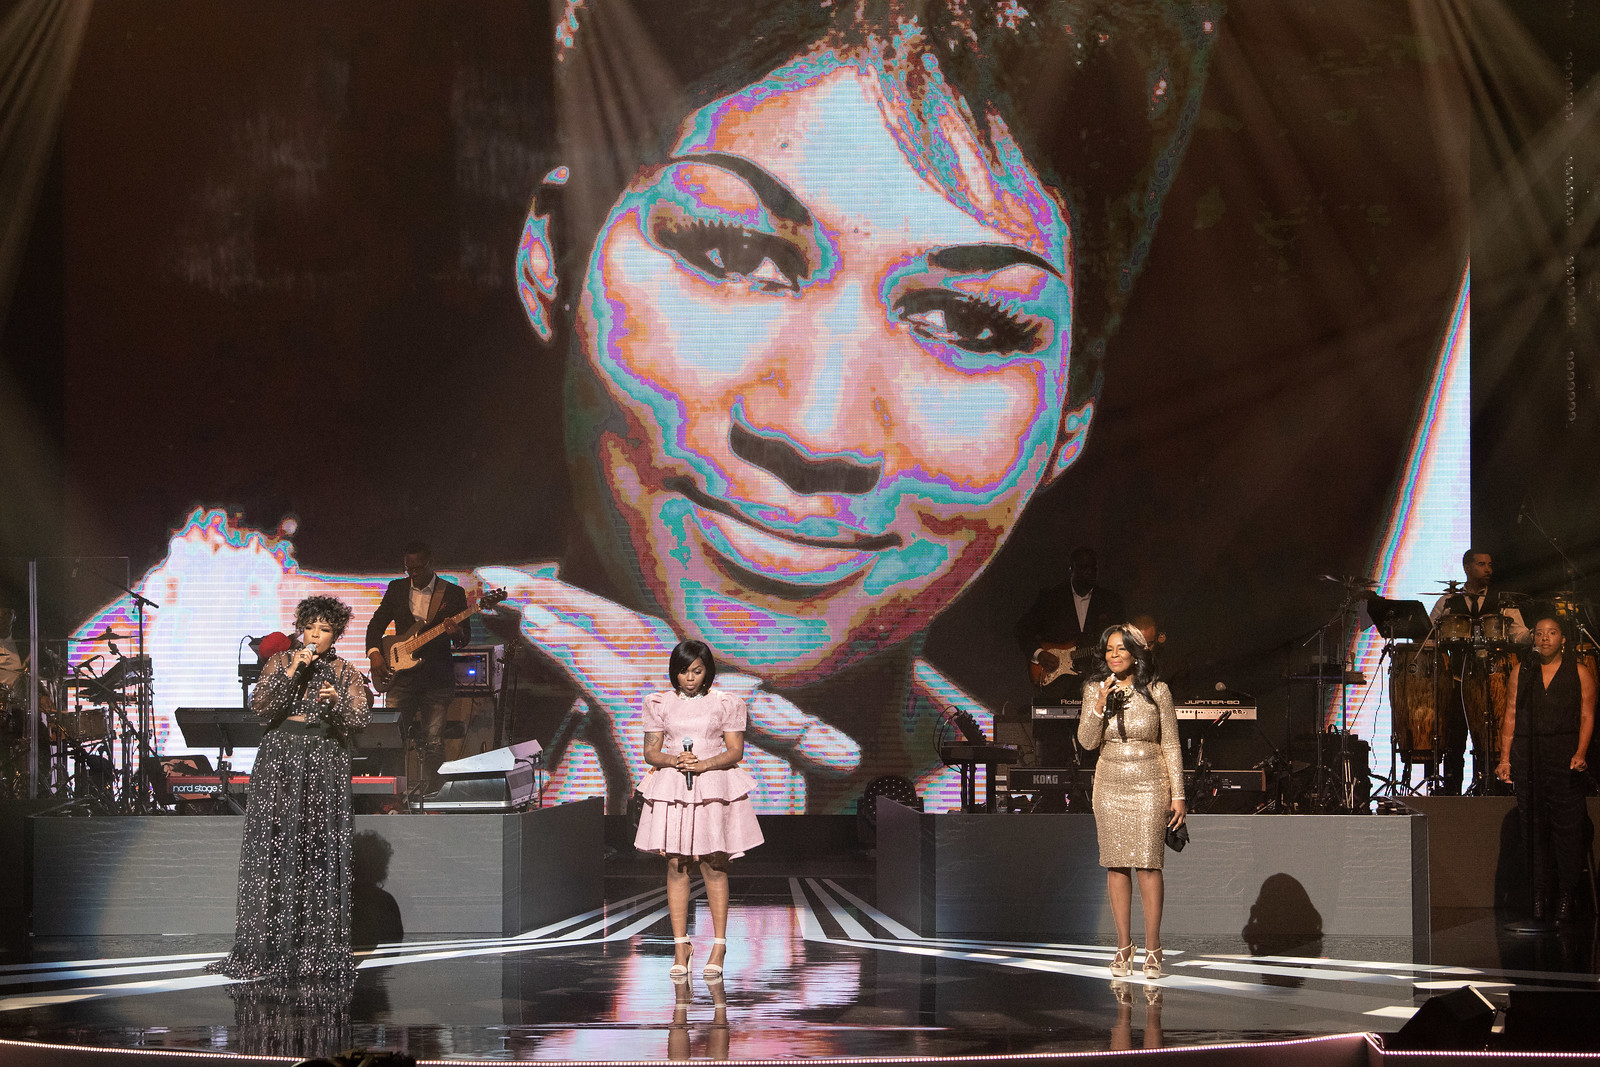 (L-R): Syleena Johnson, Paris Bennett and Angela Winbush perform a tribute to Aretha Franklin at the 3rd Annual Black Music Honors in Nashville, TN (Aug. 16, 2018)